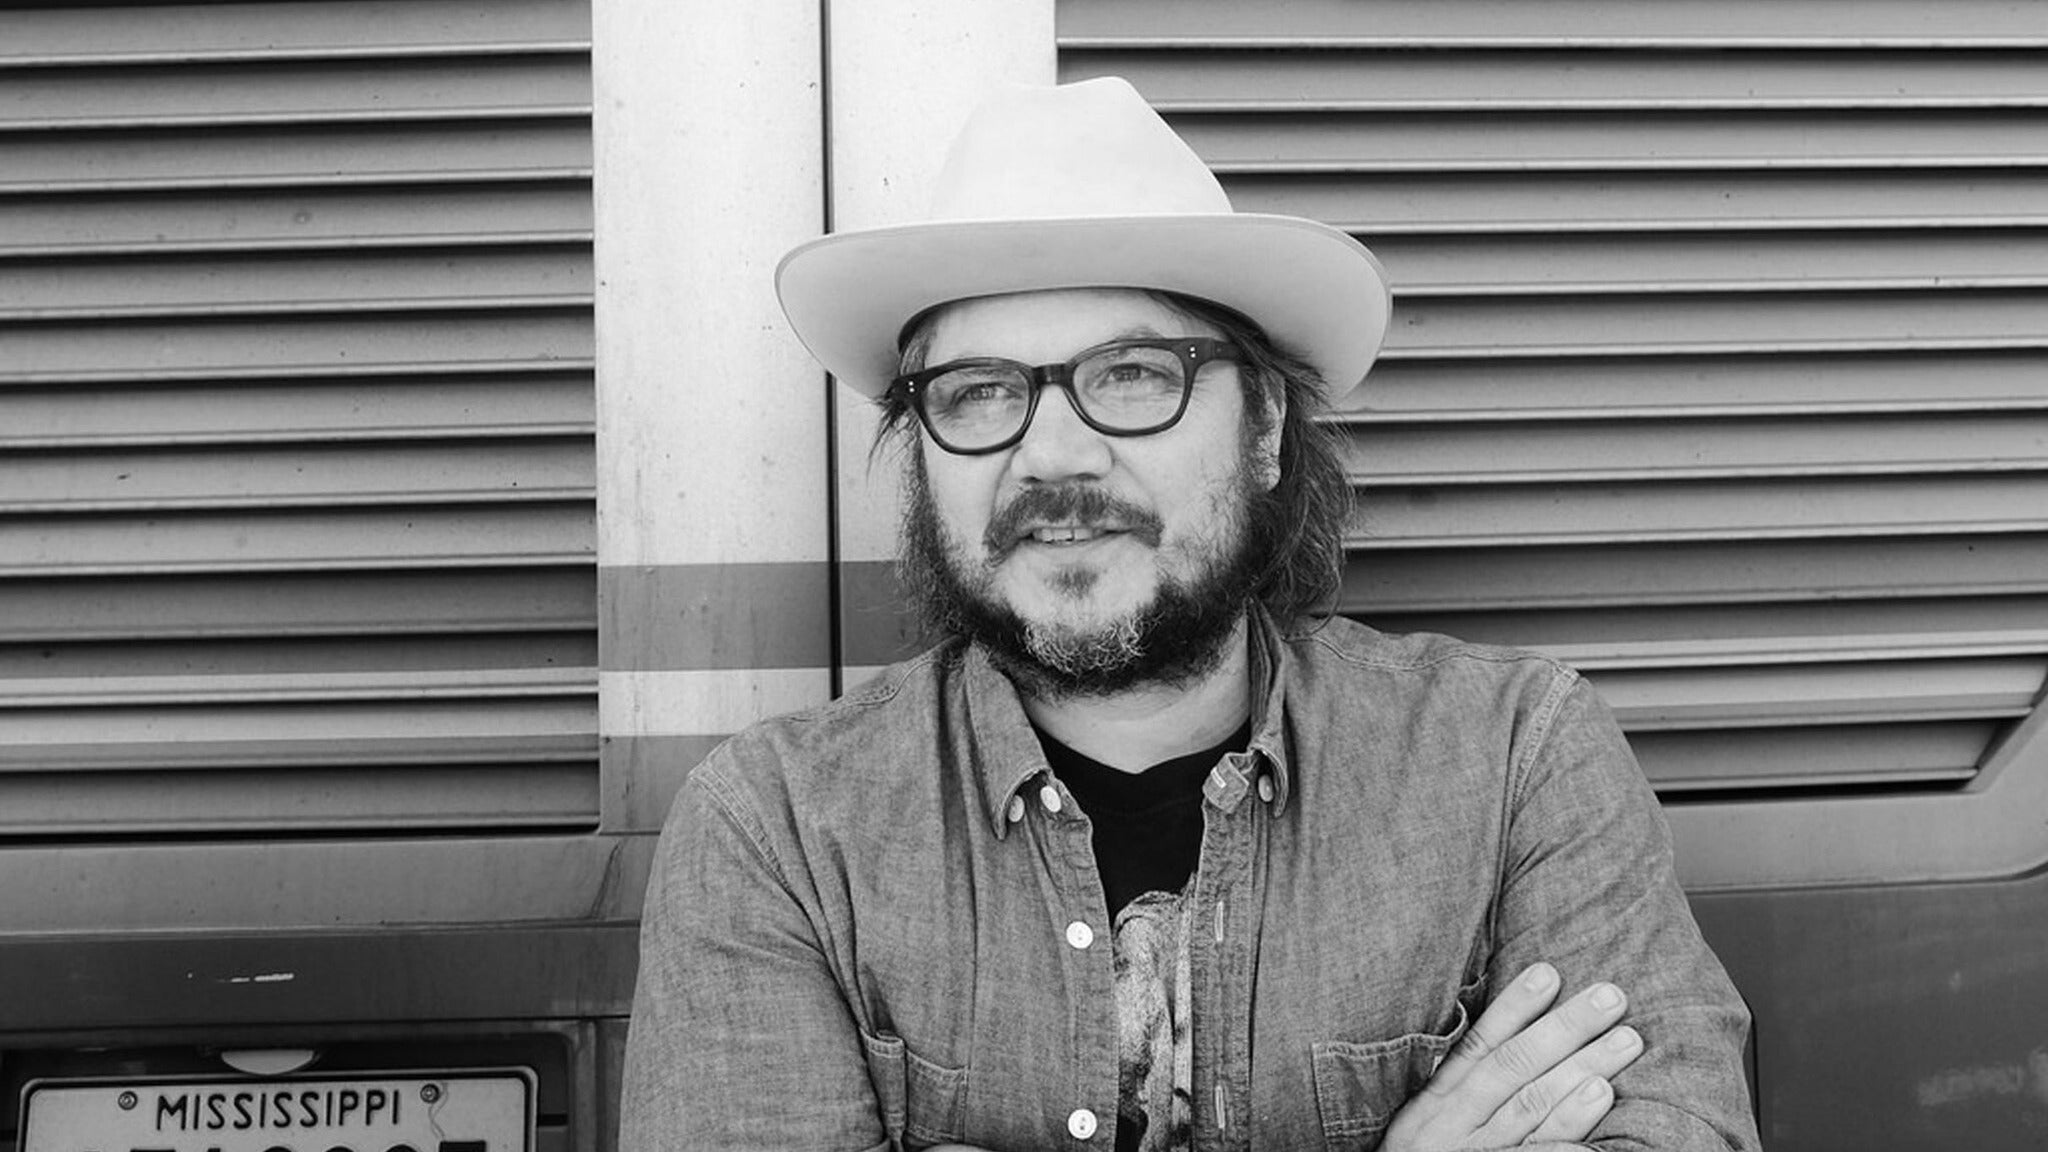 Jeff Tweedy at Bing Crosby Theatre